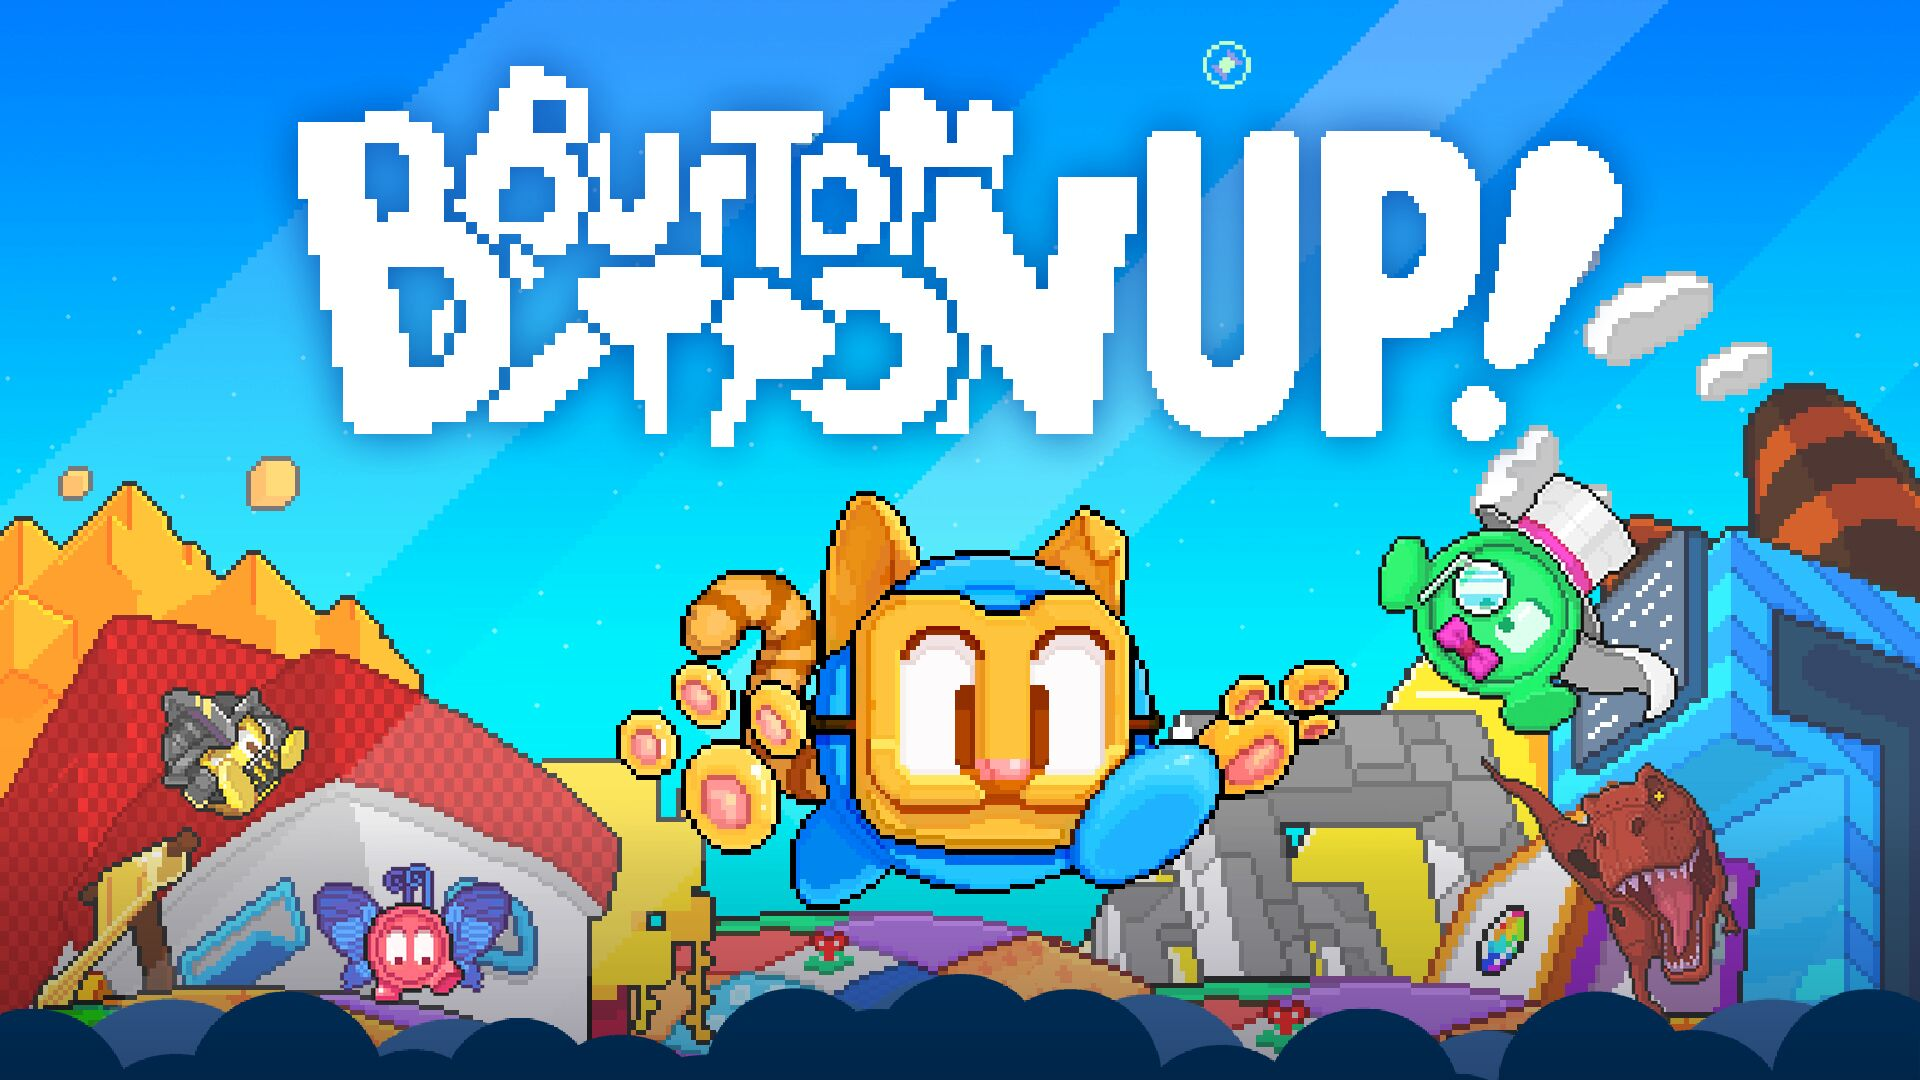 Button Button Up arrives on Switch on Sept. 26th, 2019